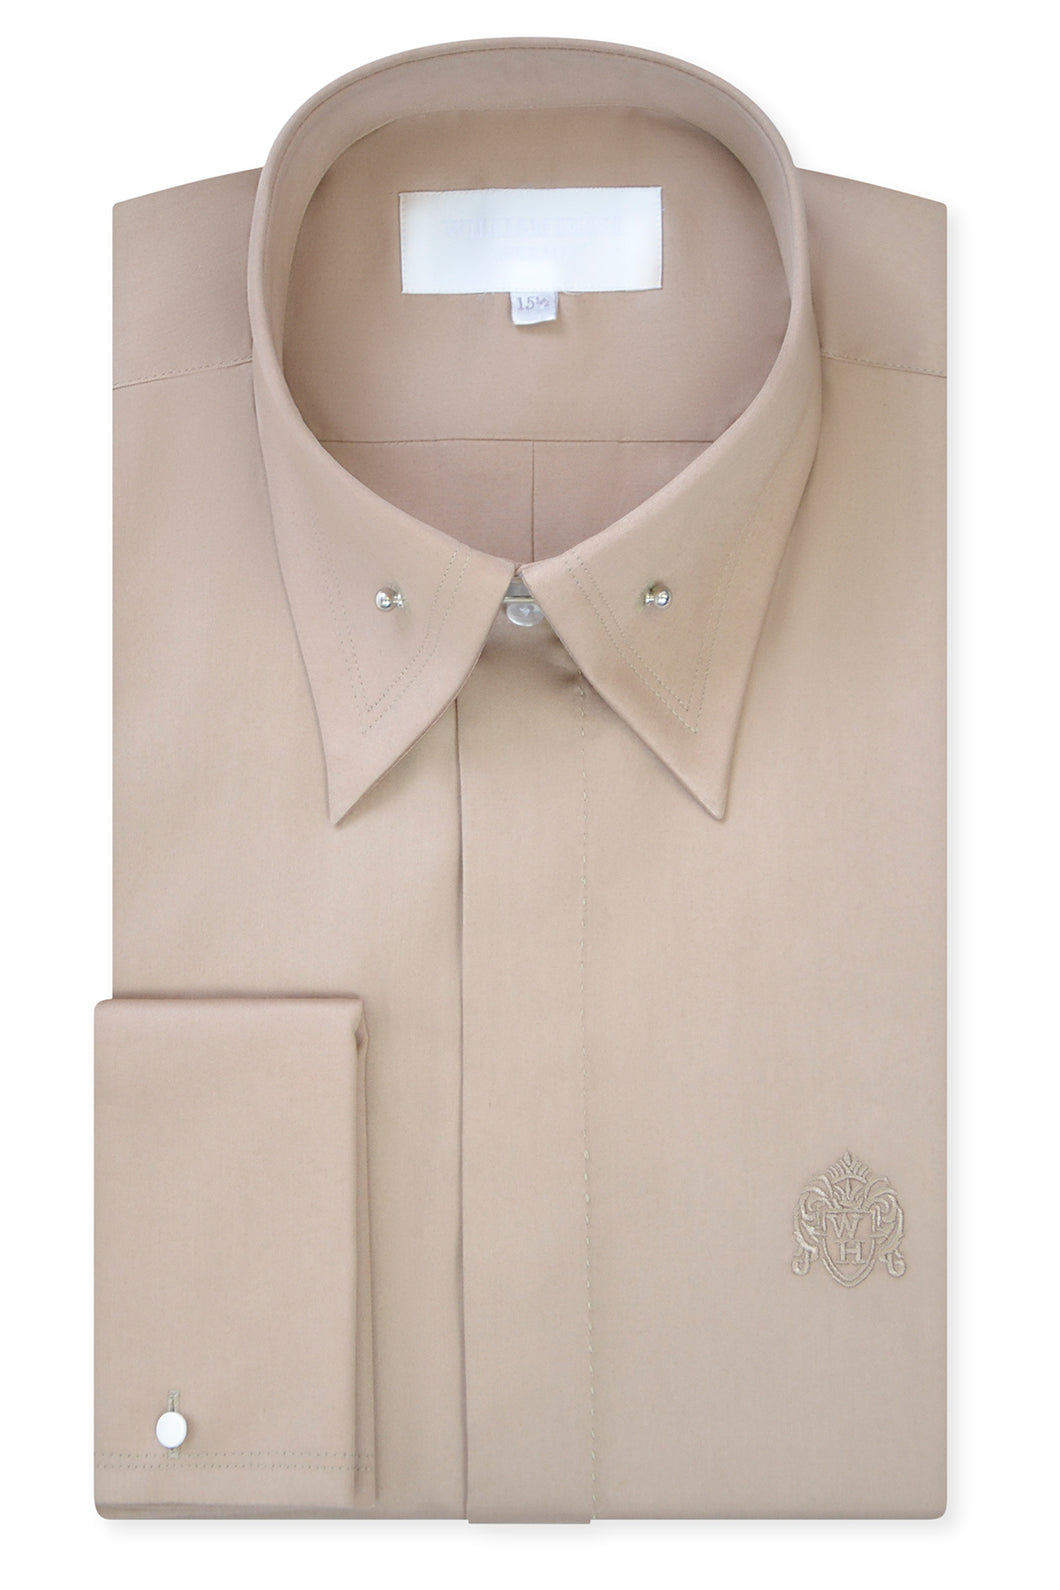 Sand Point Pin Collar Shirt with Matching Tie